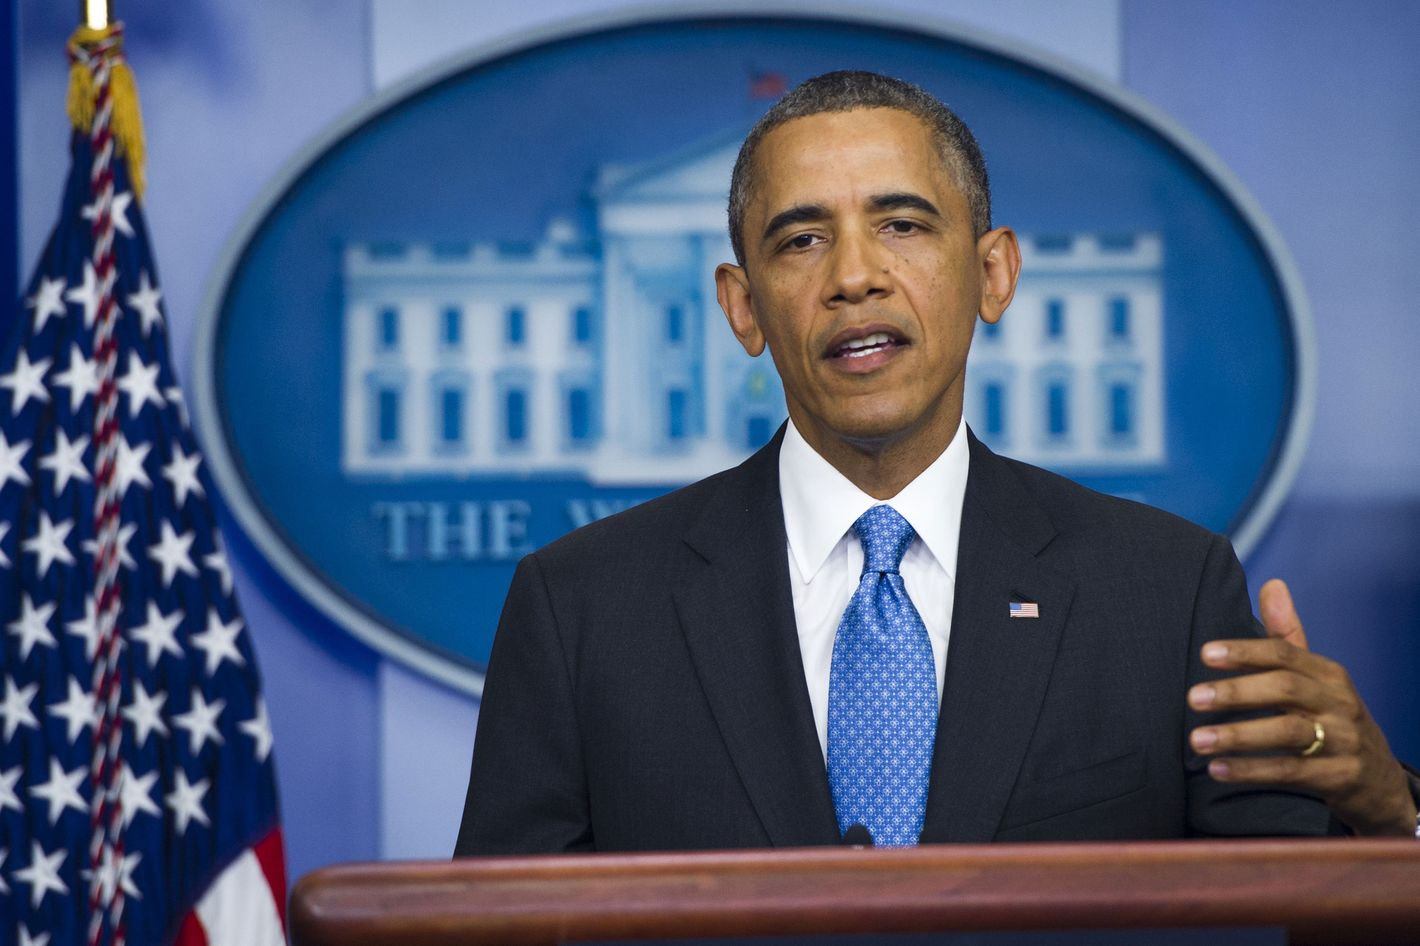 US President Barack Obama speaks about race in the context of the not guilty ruling of George Zimmerman in the killing of Florida teenager Trayvon Martin in February 2012, as he appears at the start of the Daily Press Briefing in the Brady Press Briefing Room at the White House in Washington, DC, July 19, 2013.